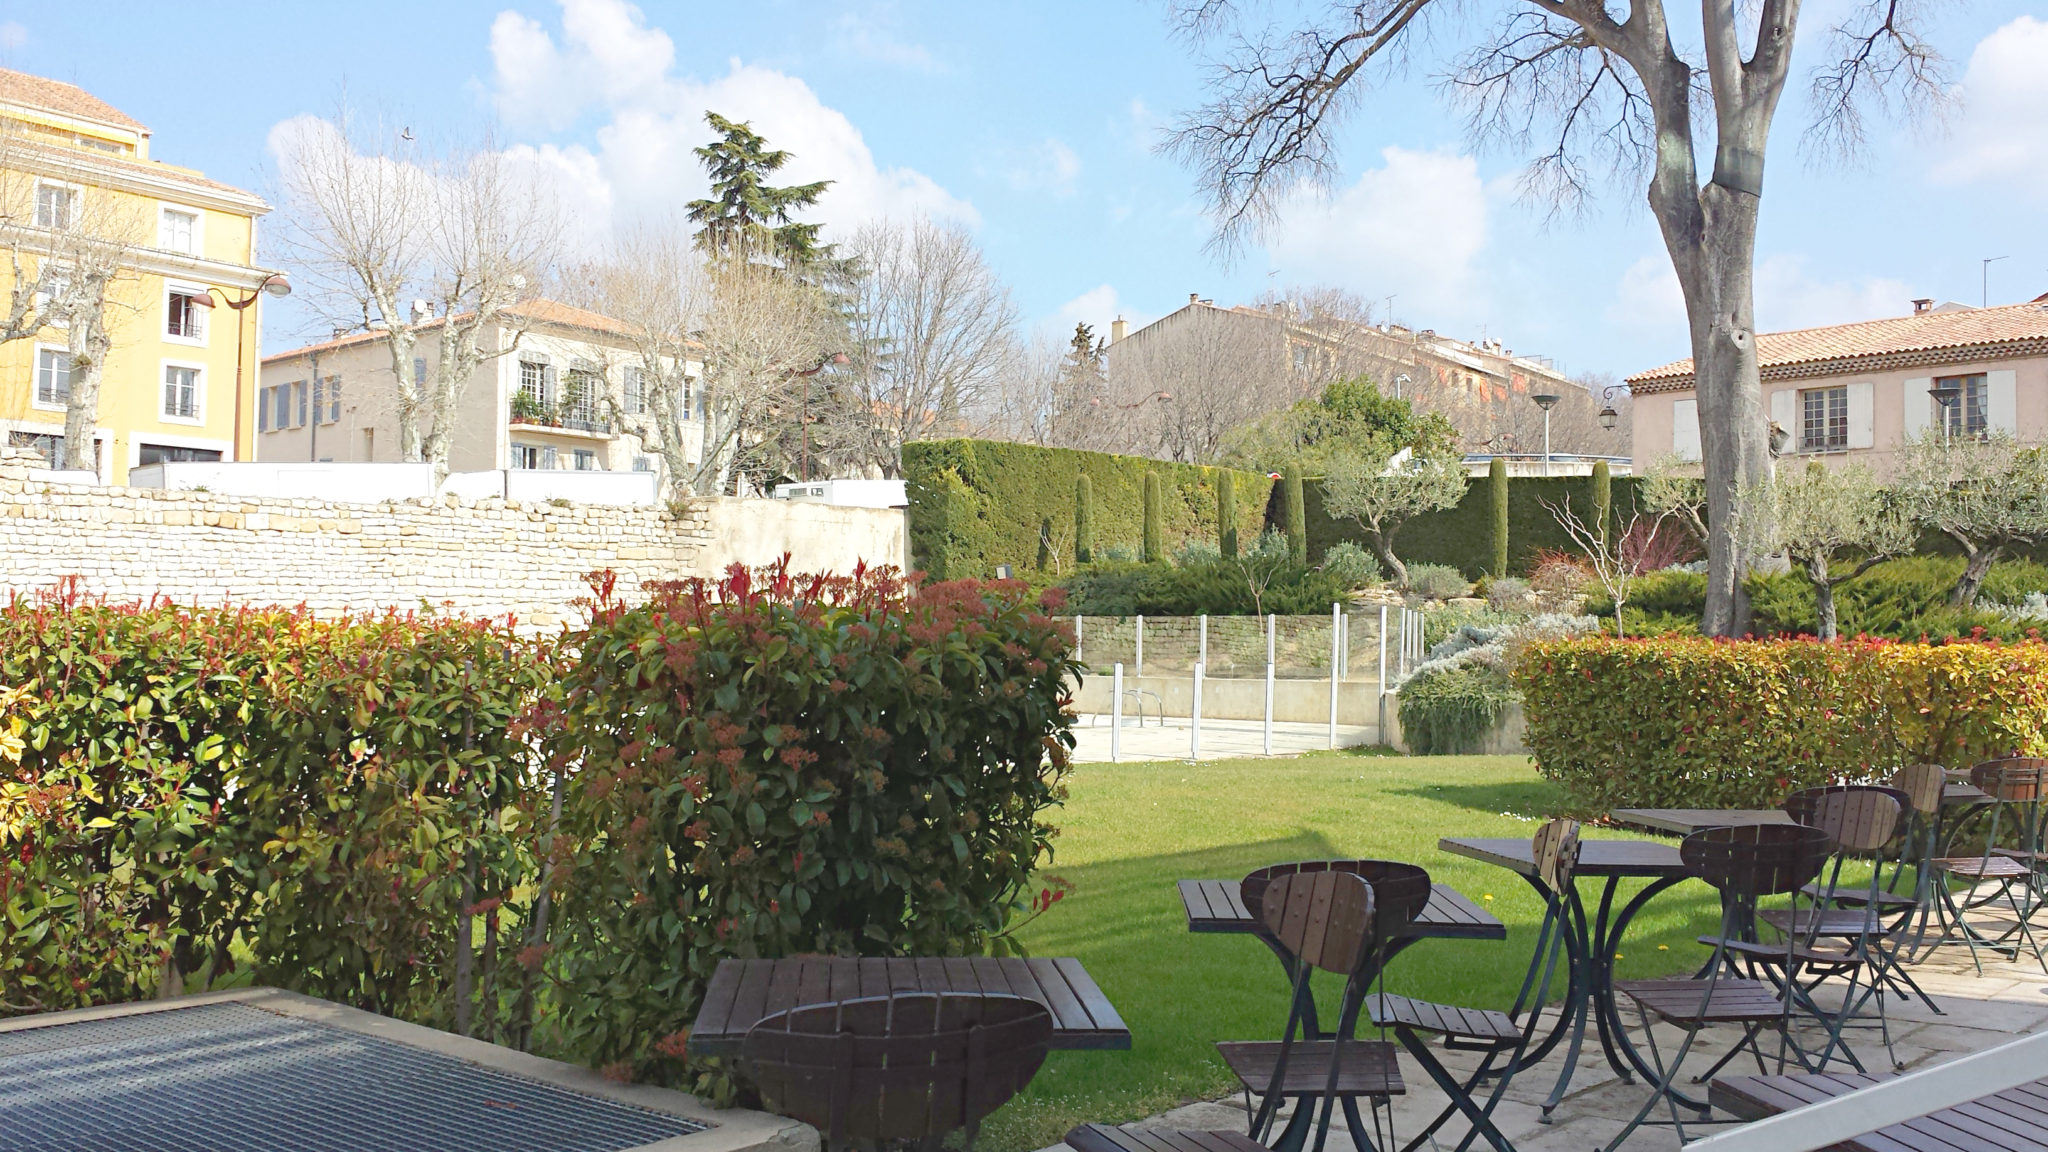 Journee_cocooning_aixenprovence_spa_thermes_sextius_terrasse_orangerie